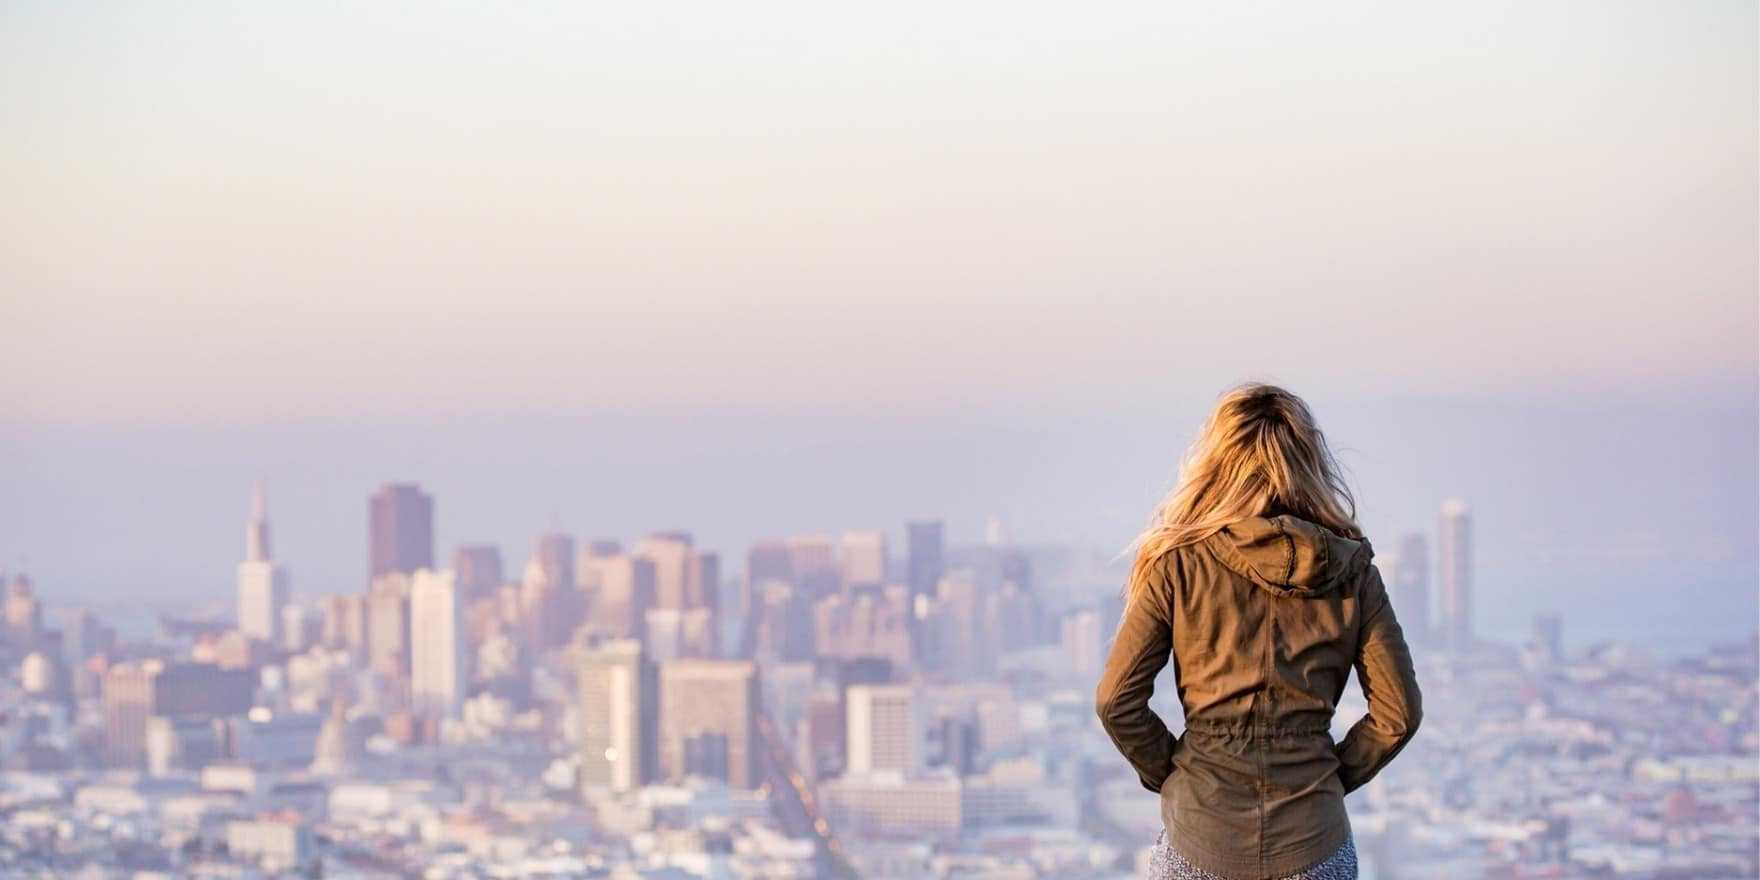 woman overlooking smoggy city hoping for a carbon tax